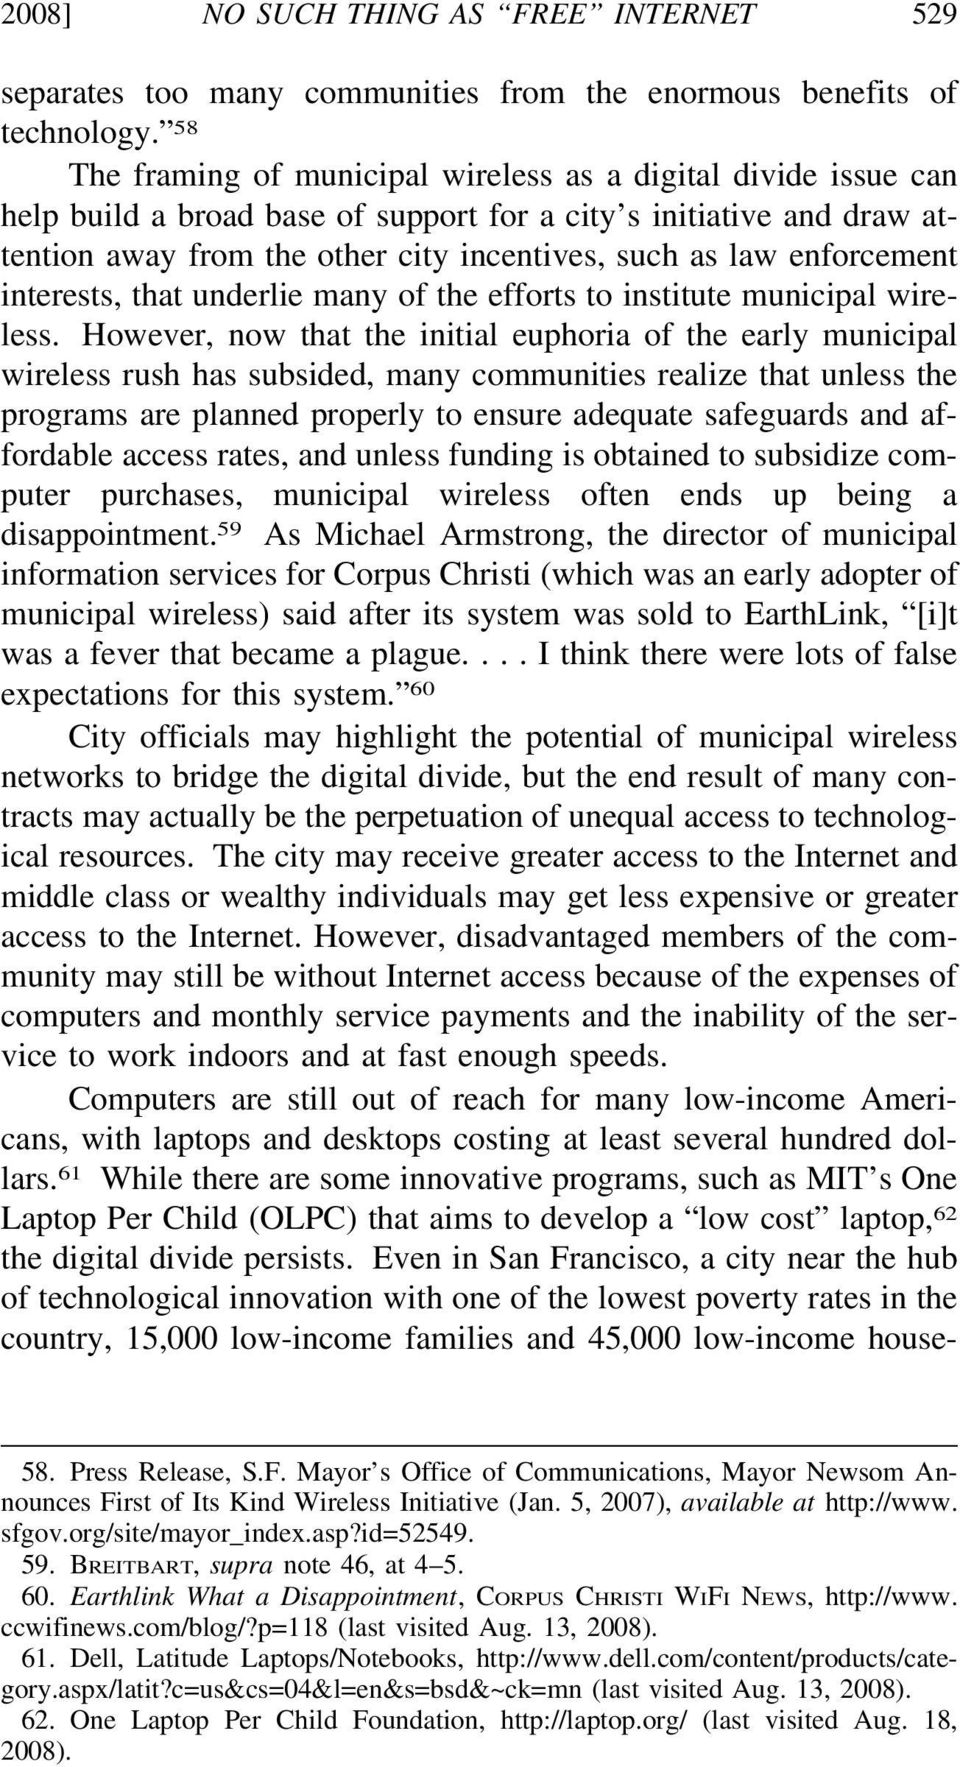 enforcement interests, that underlie many of the efforts to institute municipal wireless.